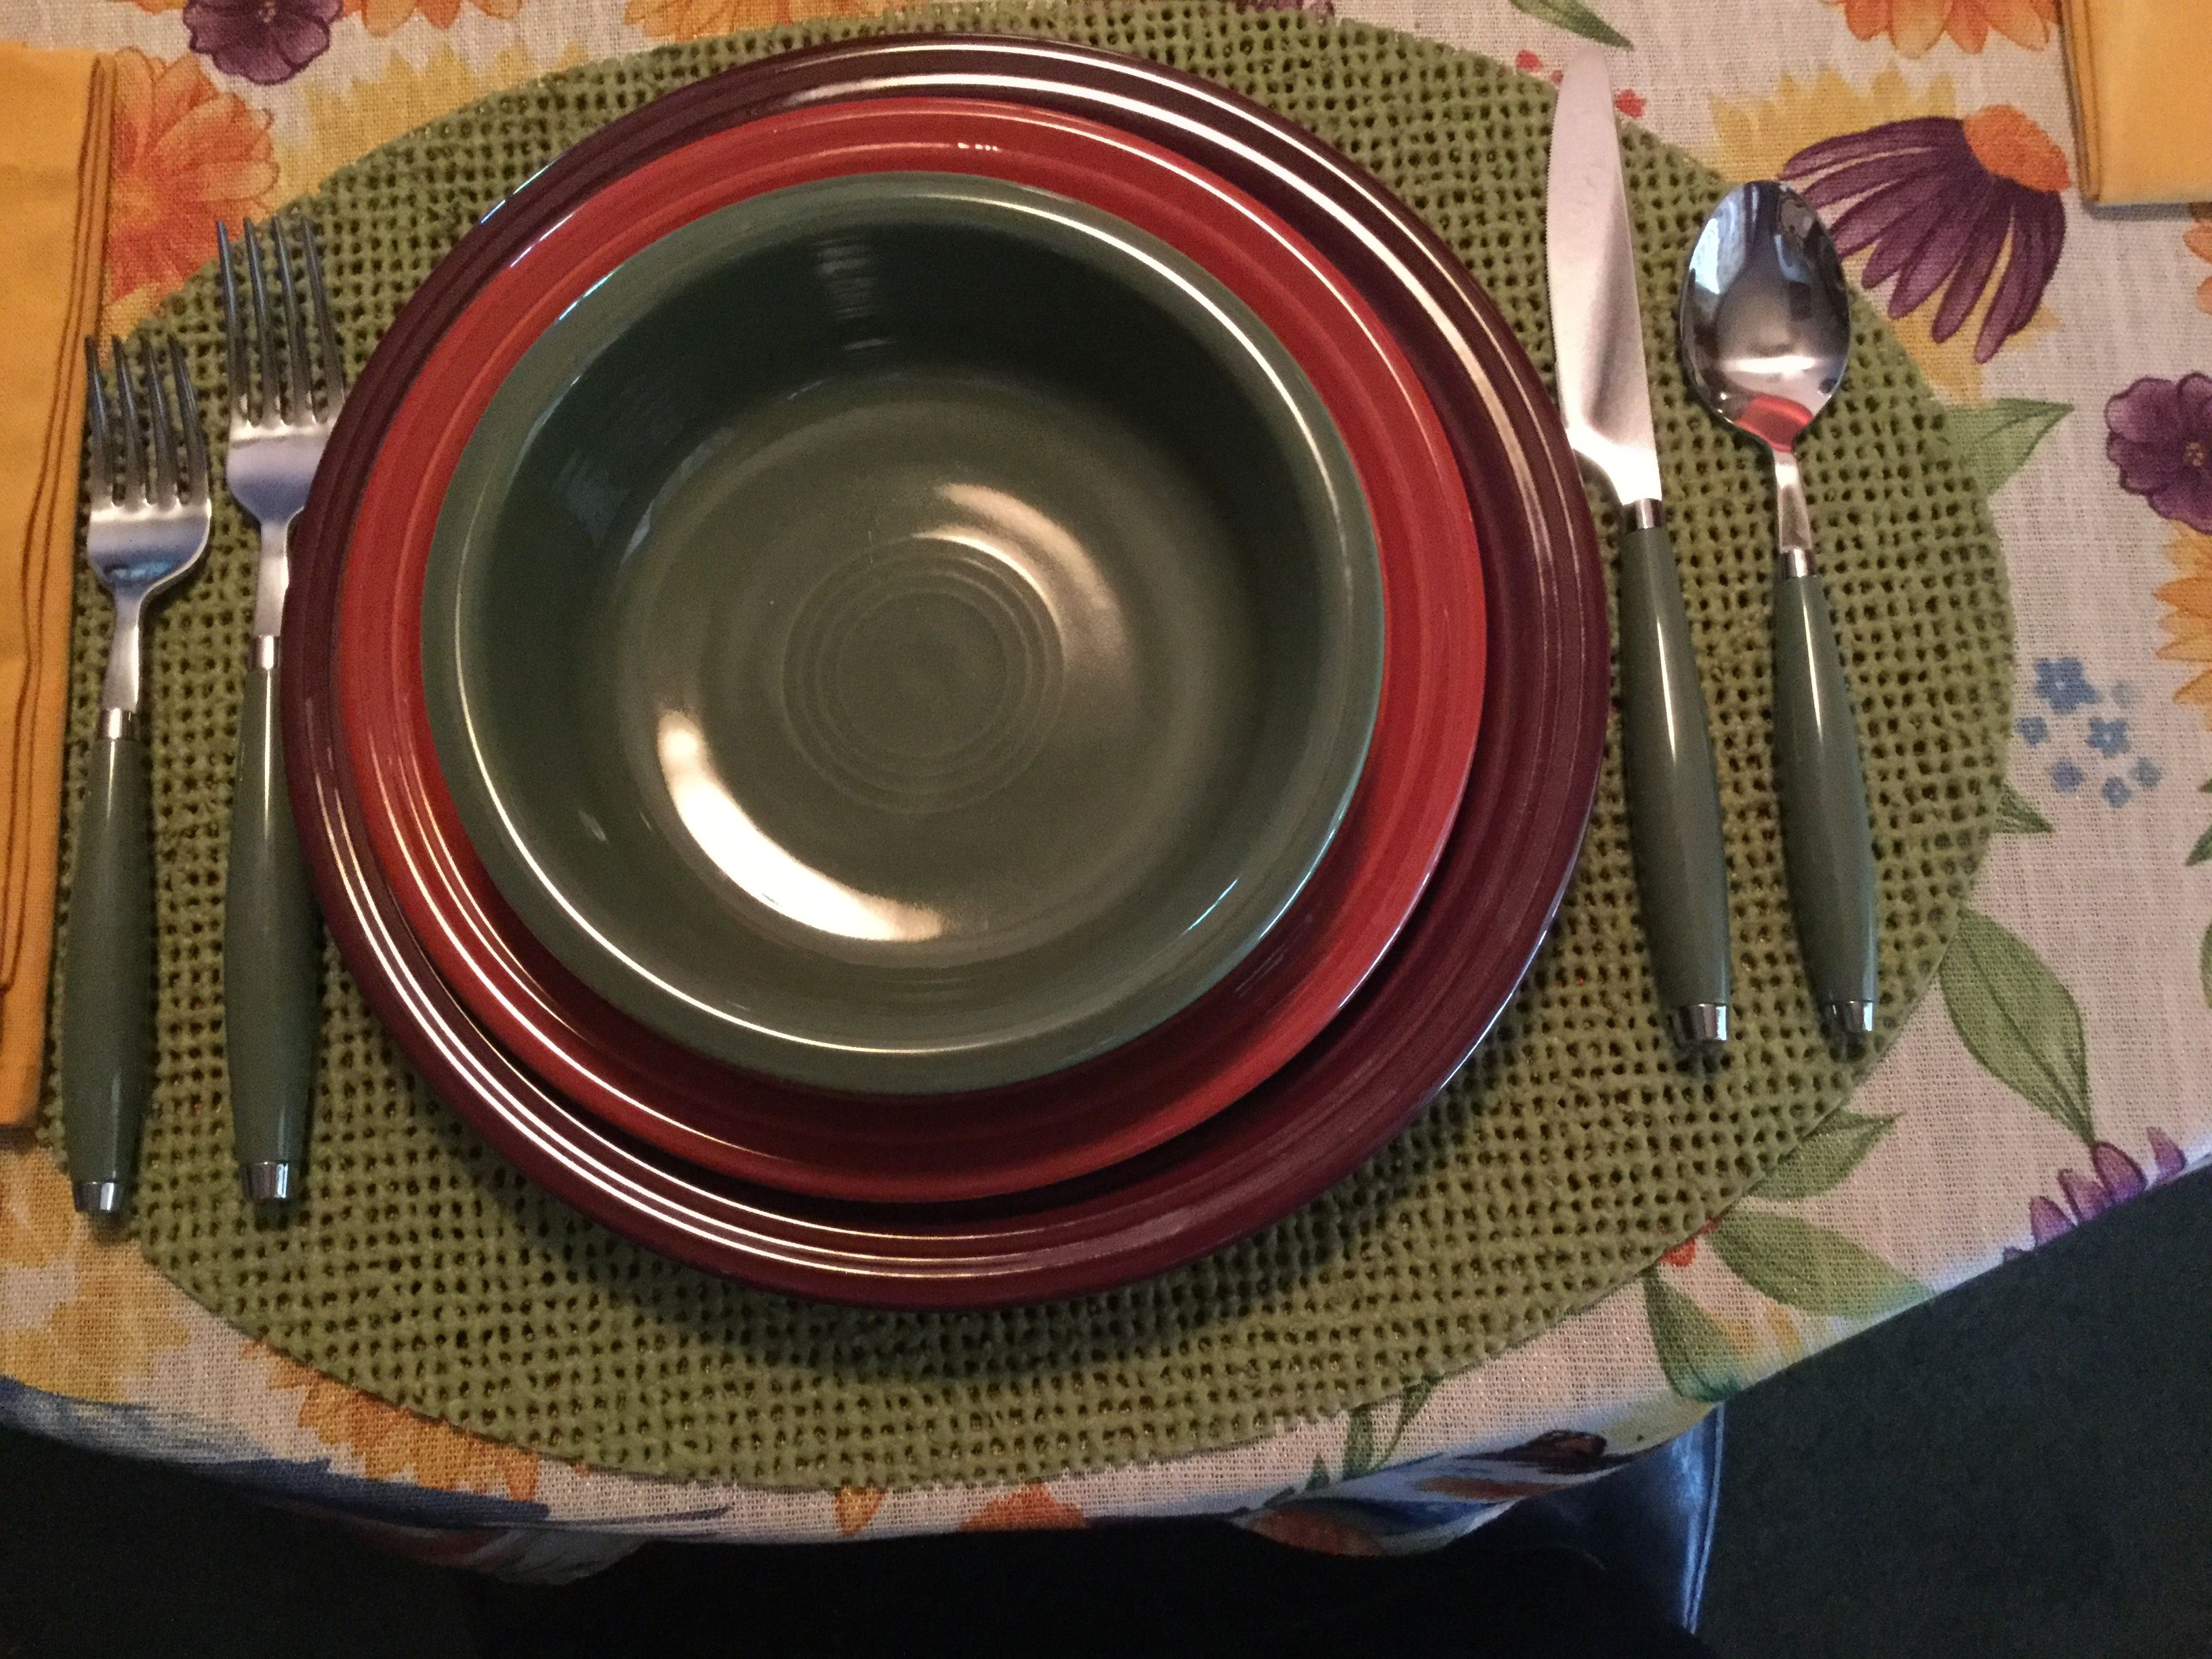 Fiesta® Dinnerware colors for Autumn place setting: Claret, Paprika and Sage.